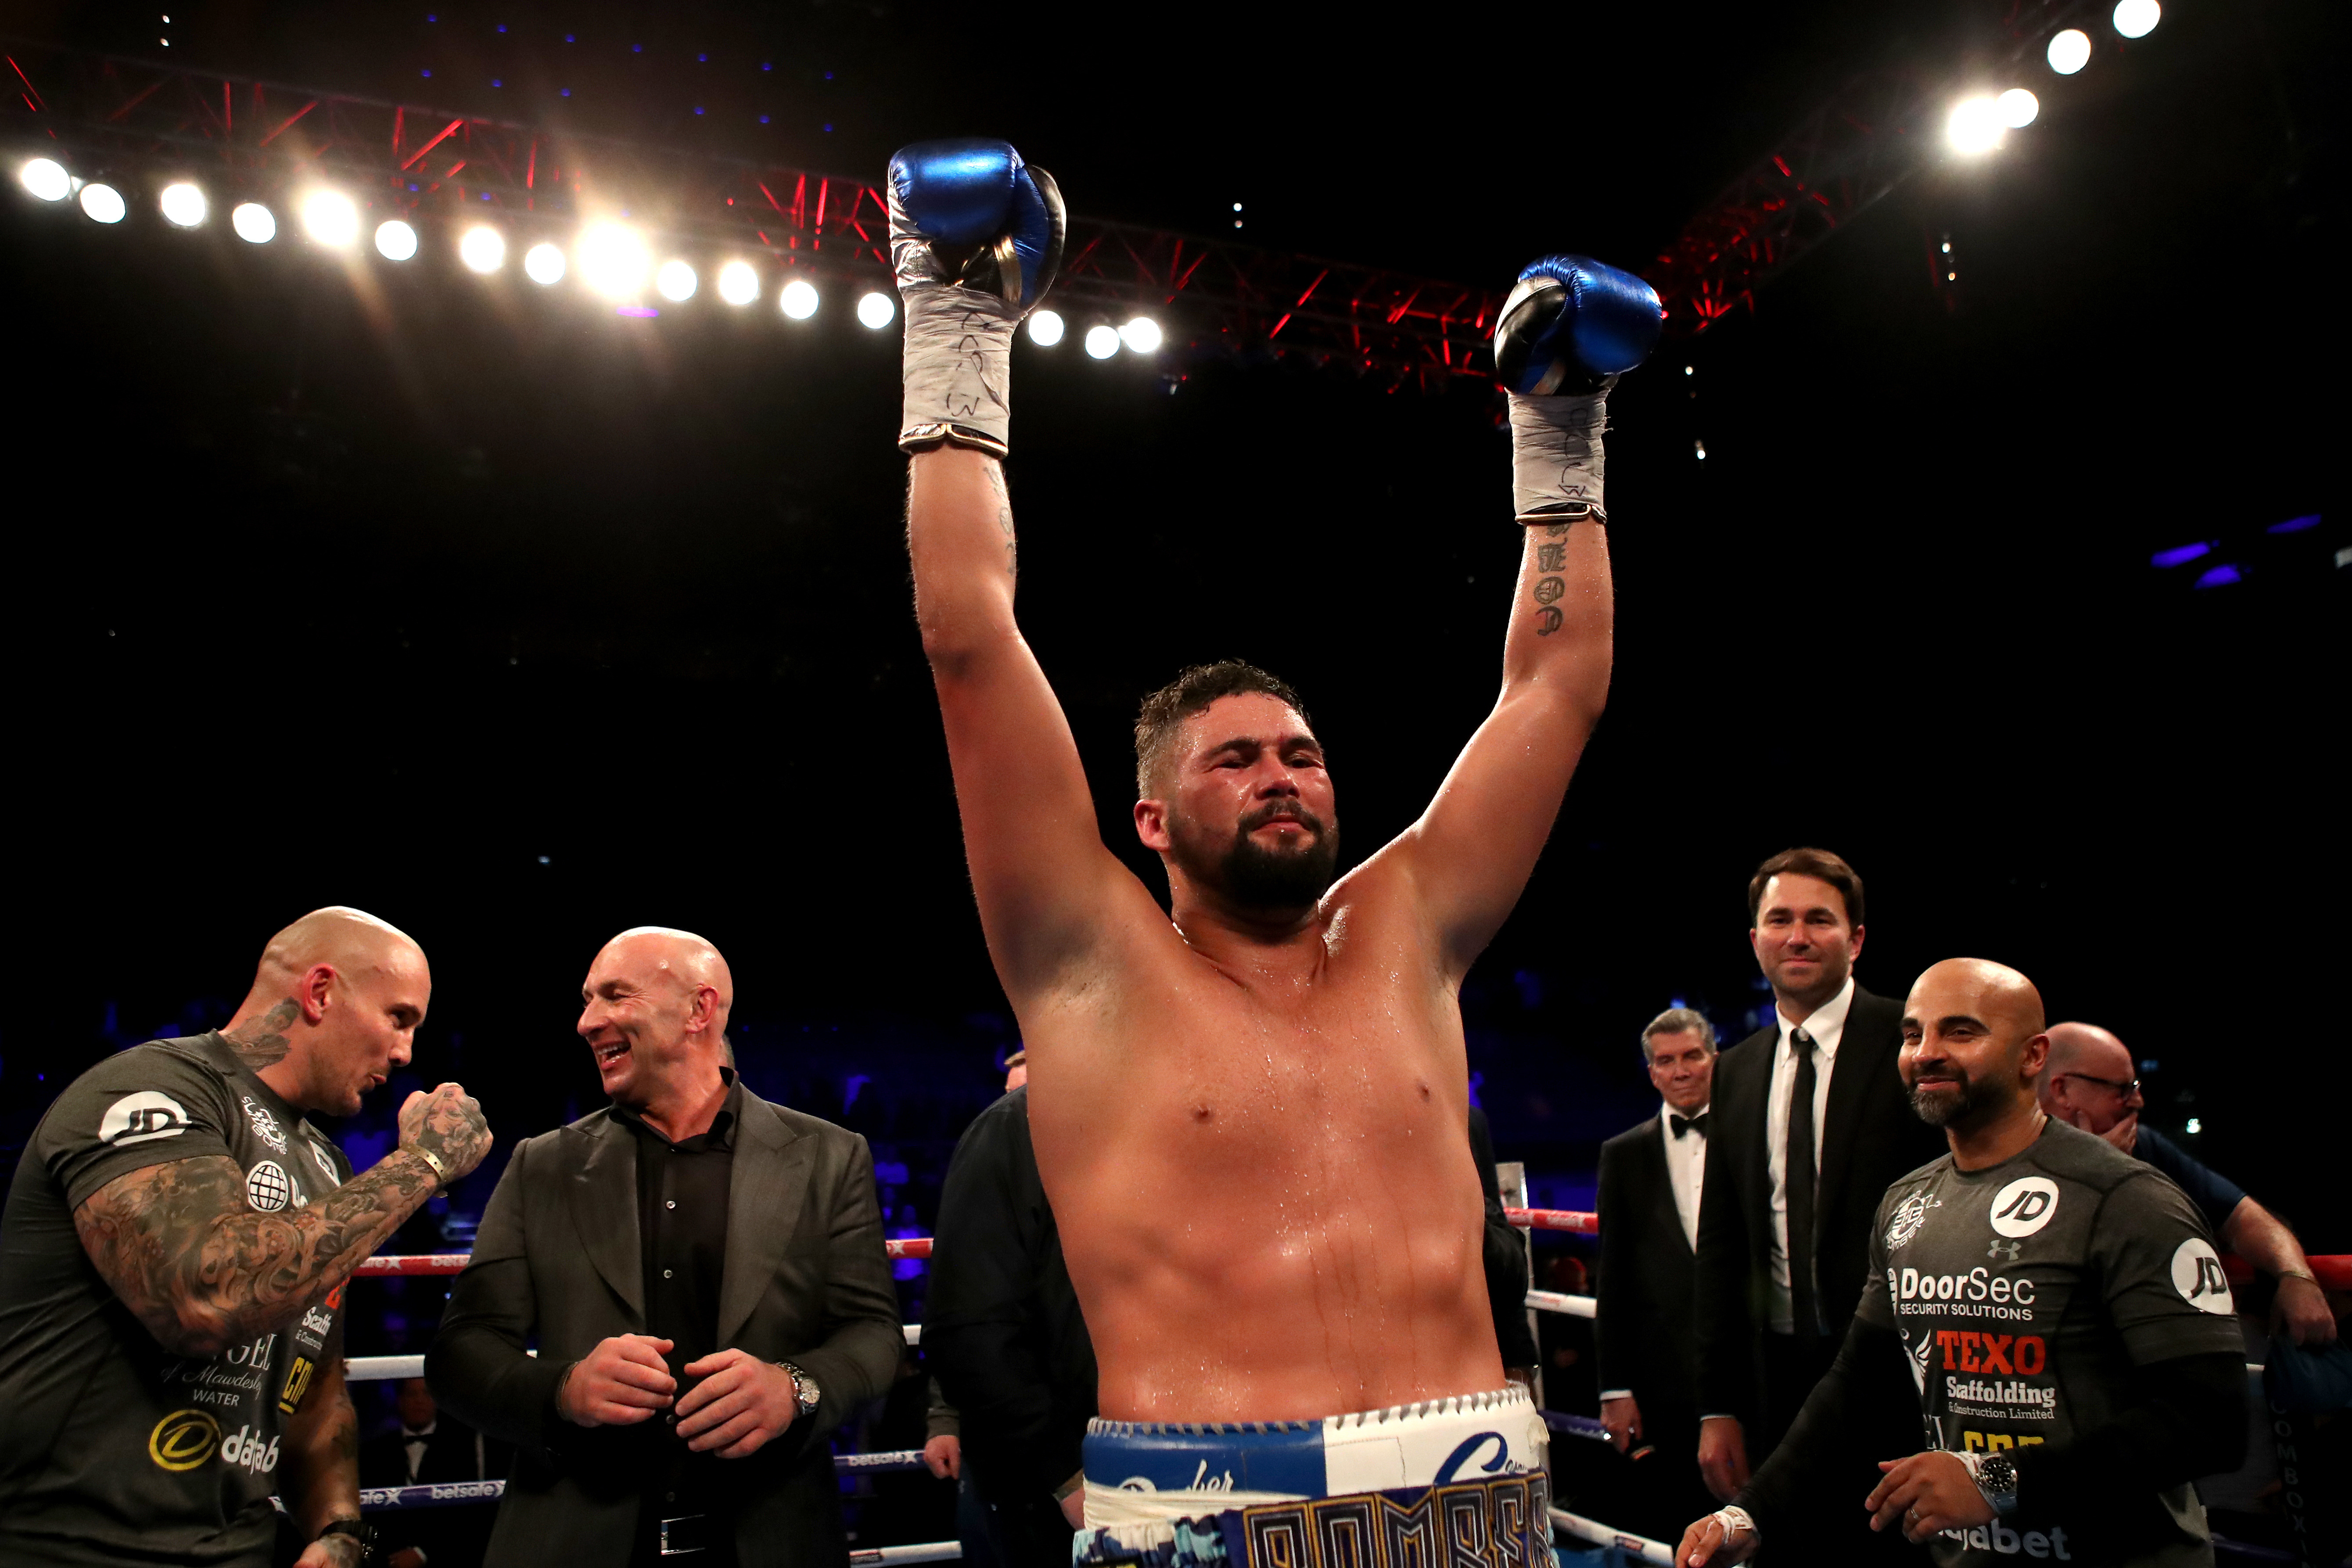 Tony Bellew celebrates his victory over David Haye